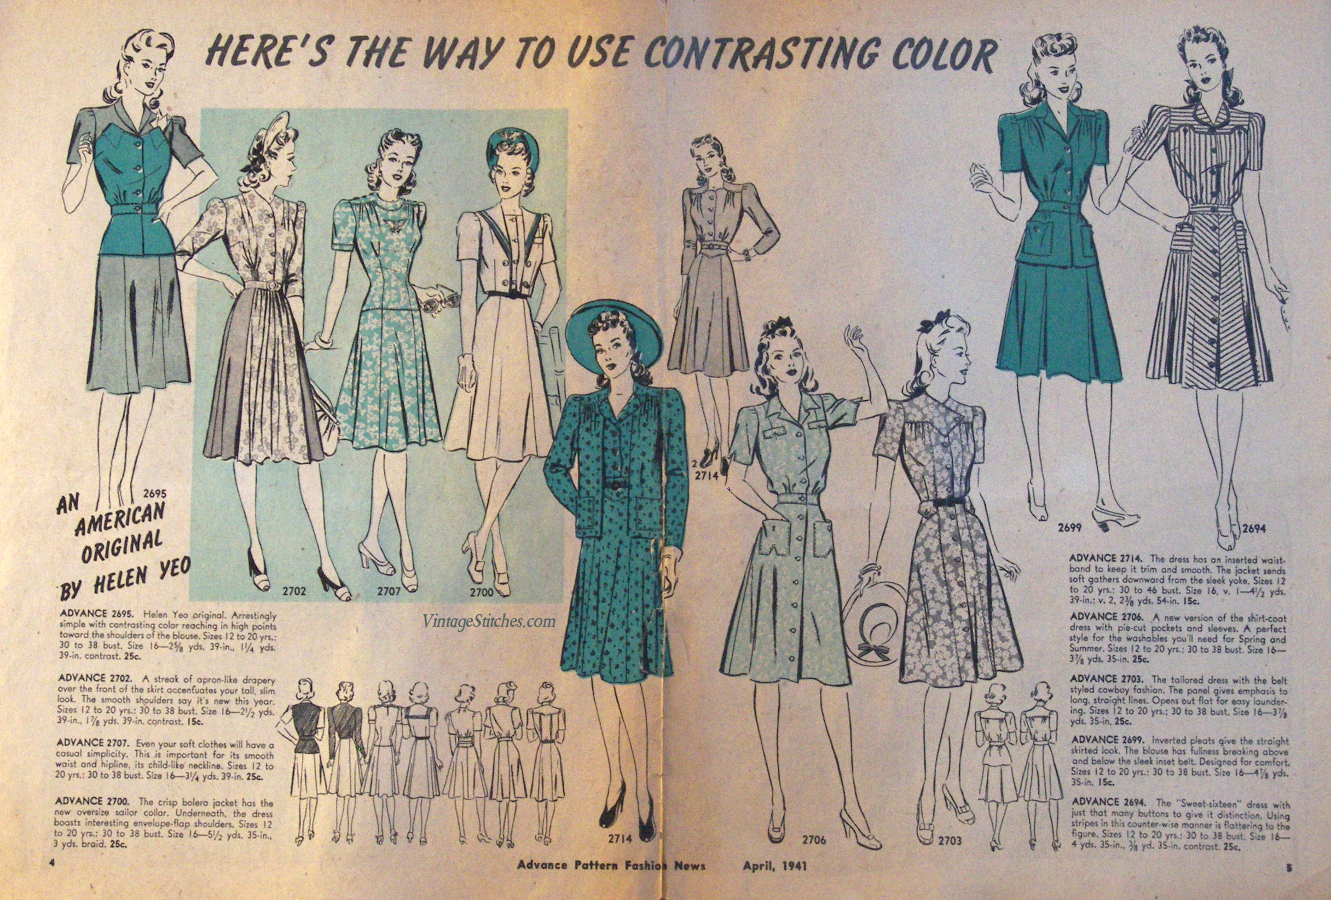 """April 1941 Advance Pattern Fashion News, image of a ladies two-page fashion magazine layout titled """"Here's the way to use contrasting color"""""""